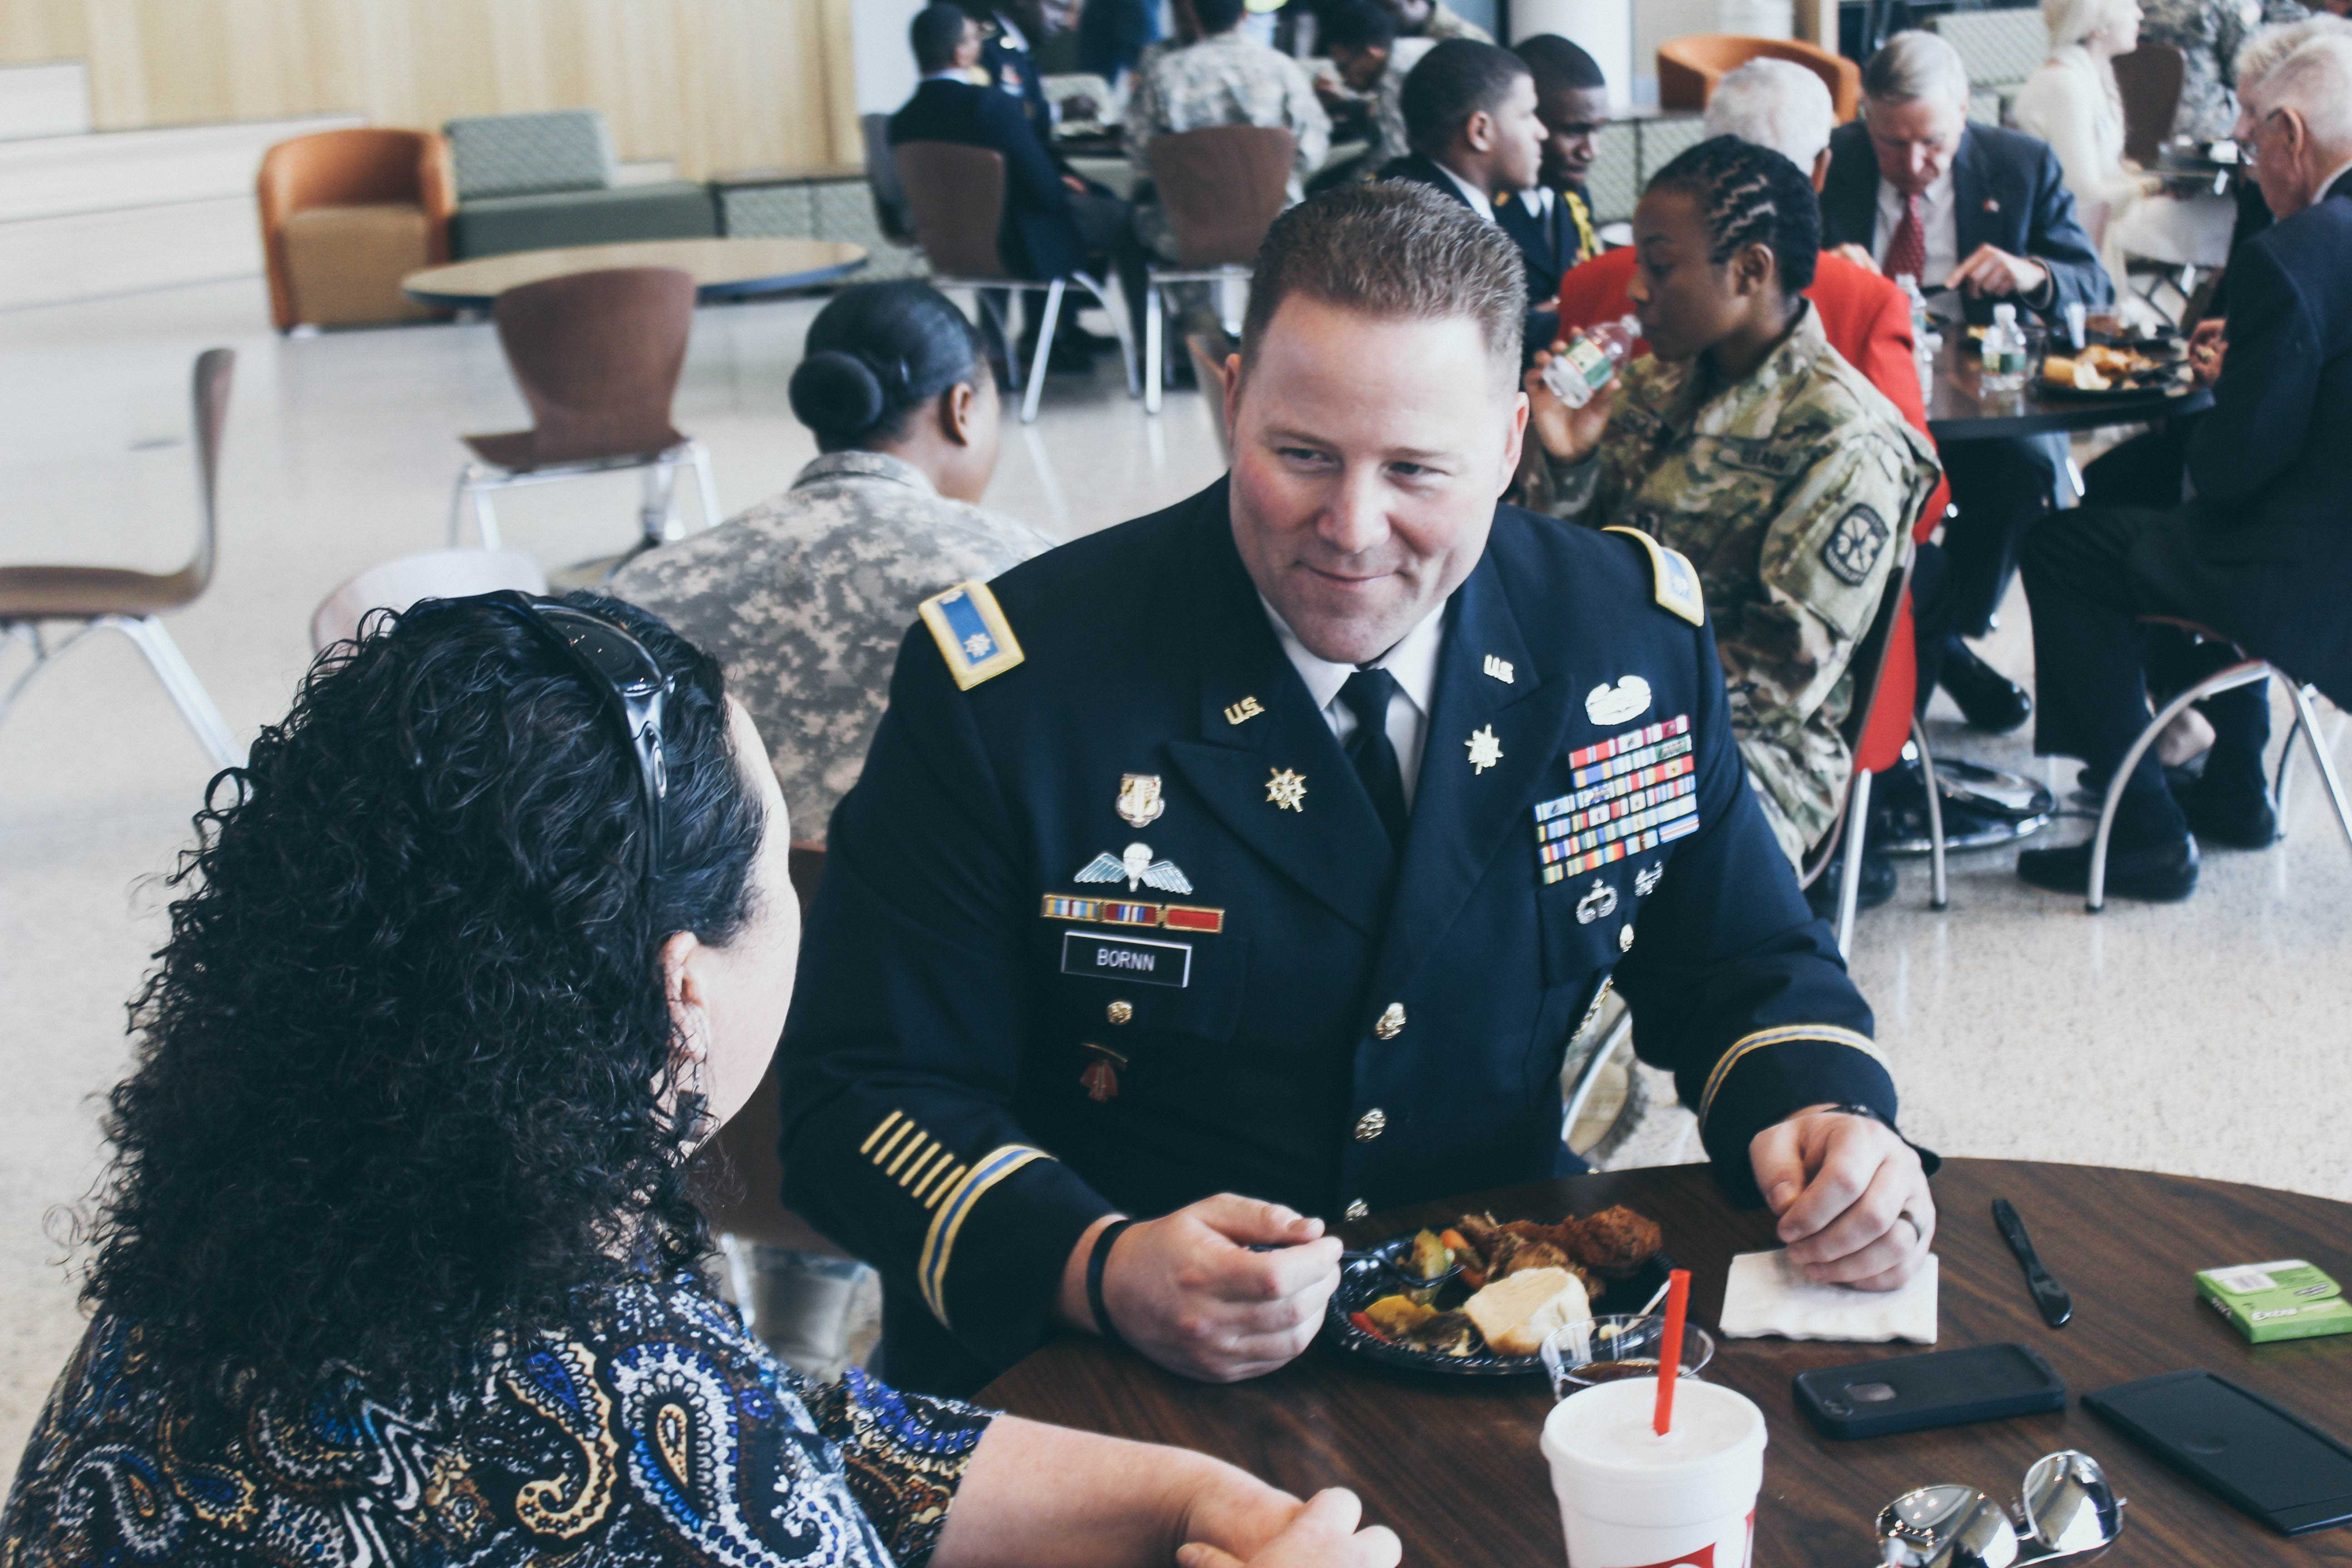 Lt. Col. David Bornn, professor of military science at Morgan State University and his wife, Kandi Bornn, at the Tuskegee Airman Symposium luncheon. Photo by Maliik Obee.